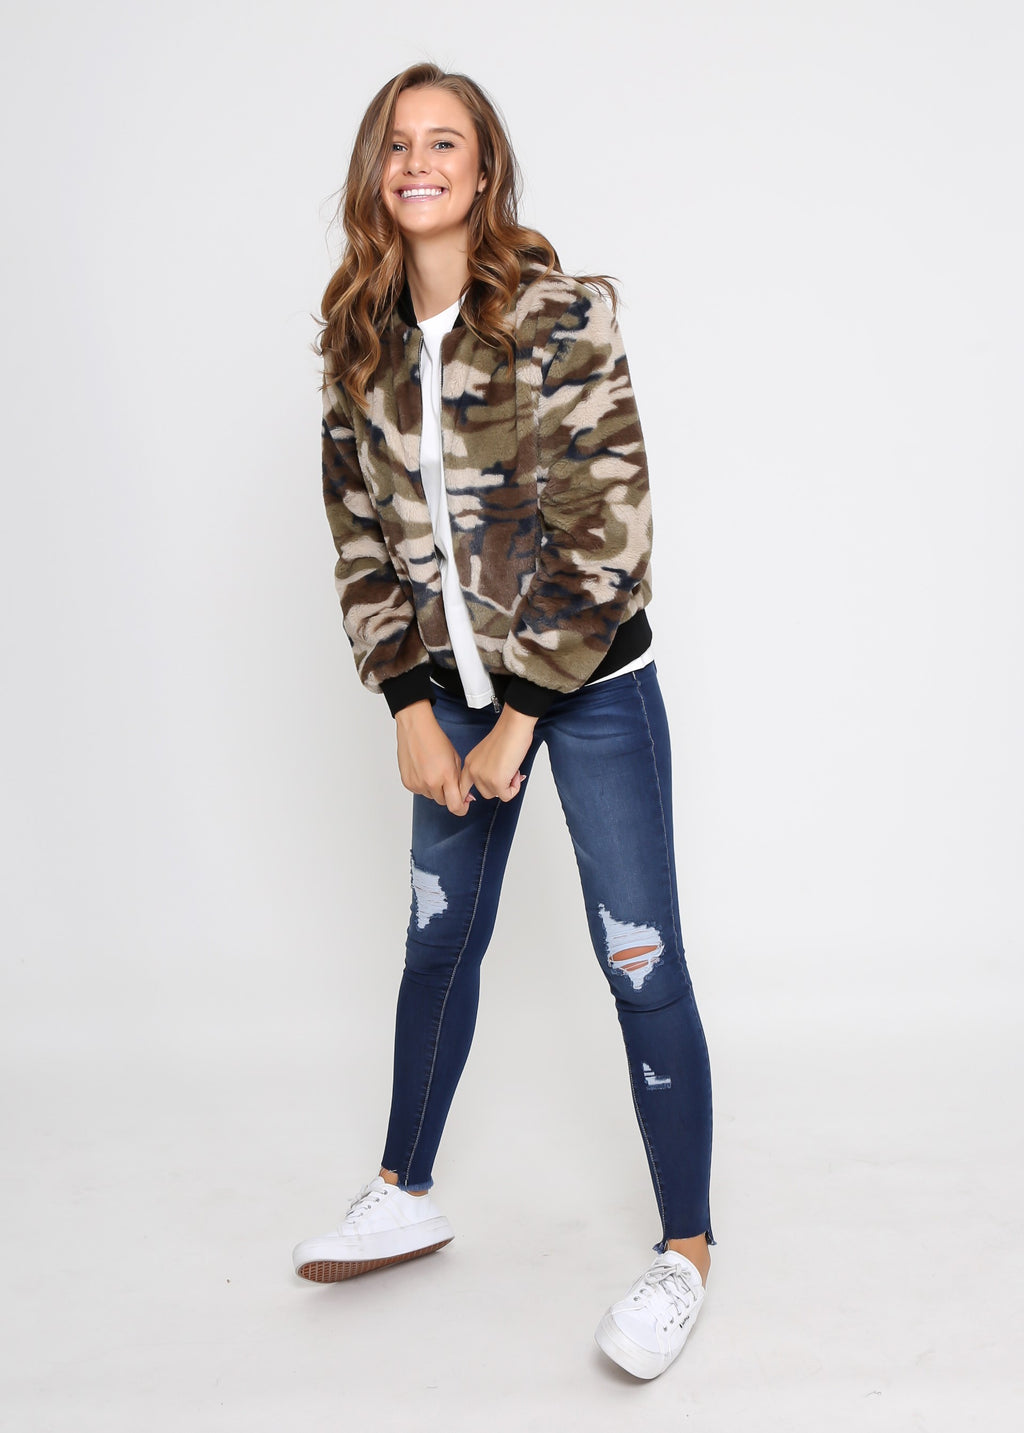 CASEY FLEECE BOMBER JACKET - KHAKI CAMO PRINT - MARK DOWN MADNESS